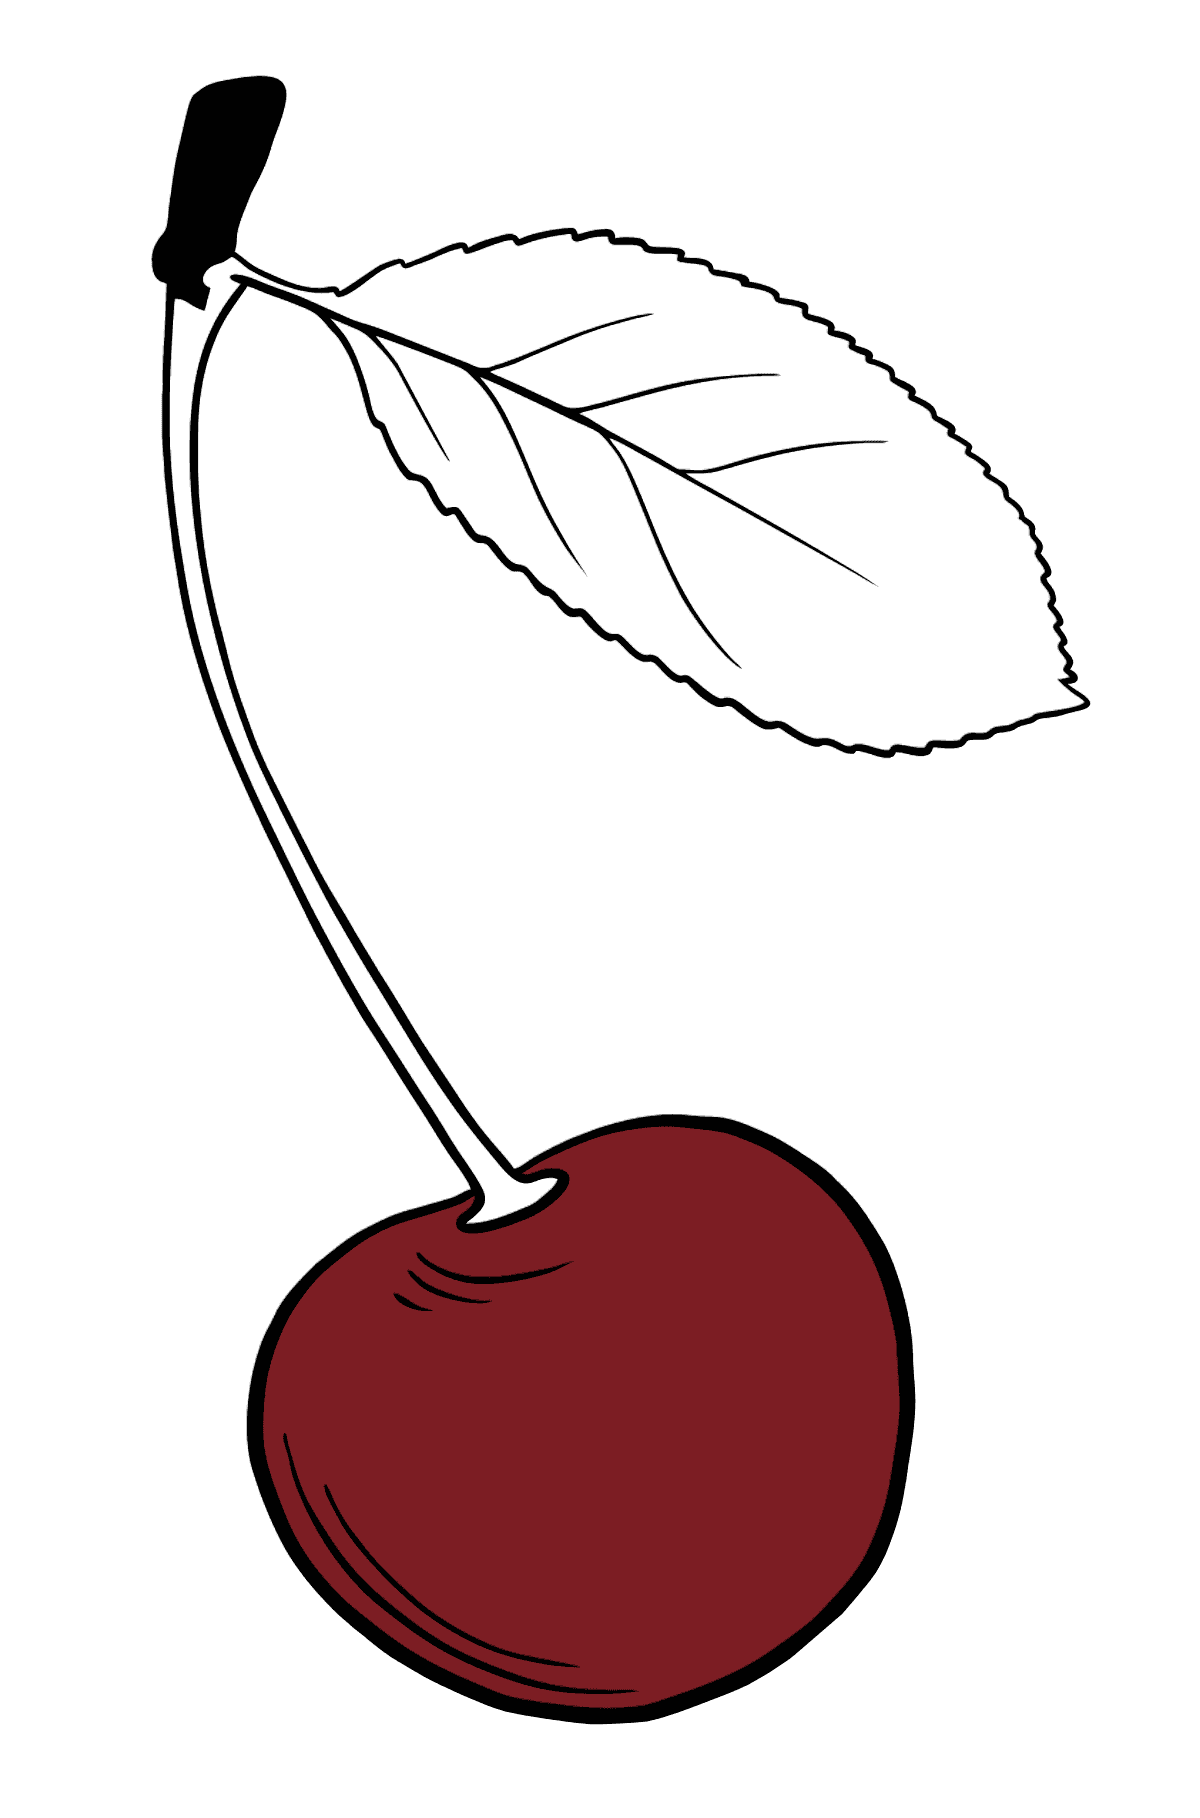 Cherry coloring page - Coloring Pages for Kids